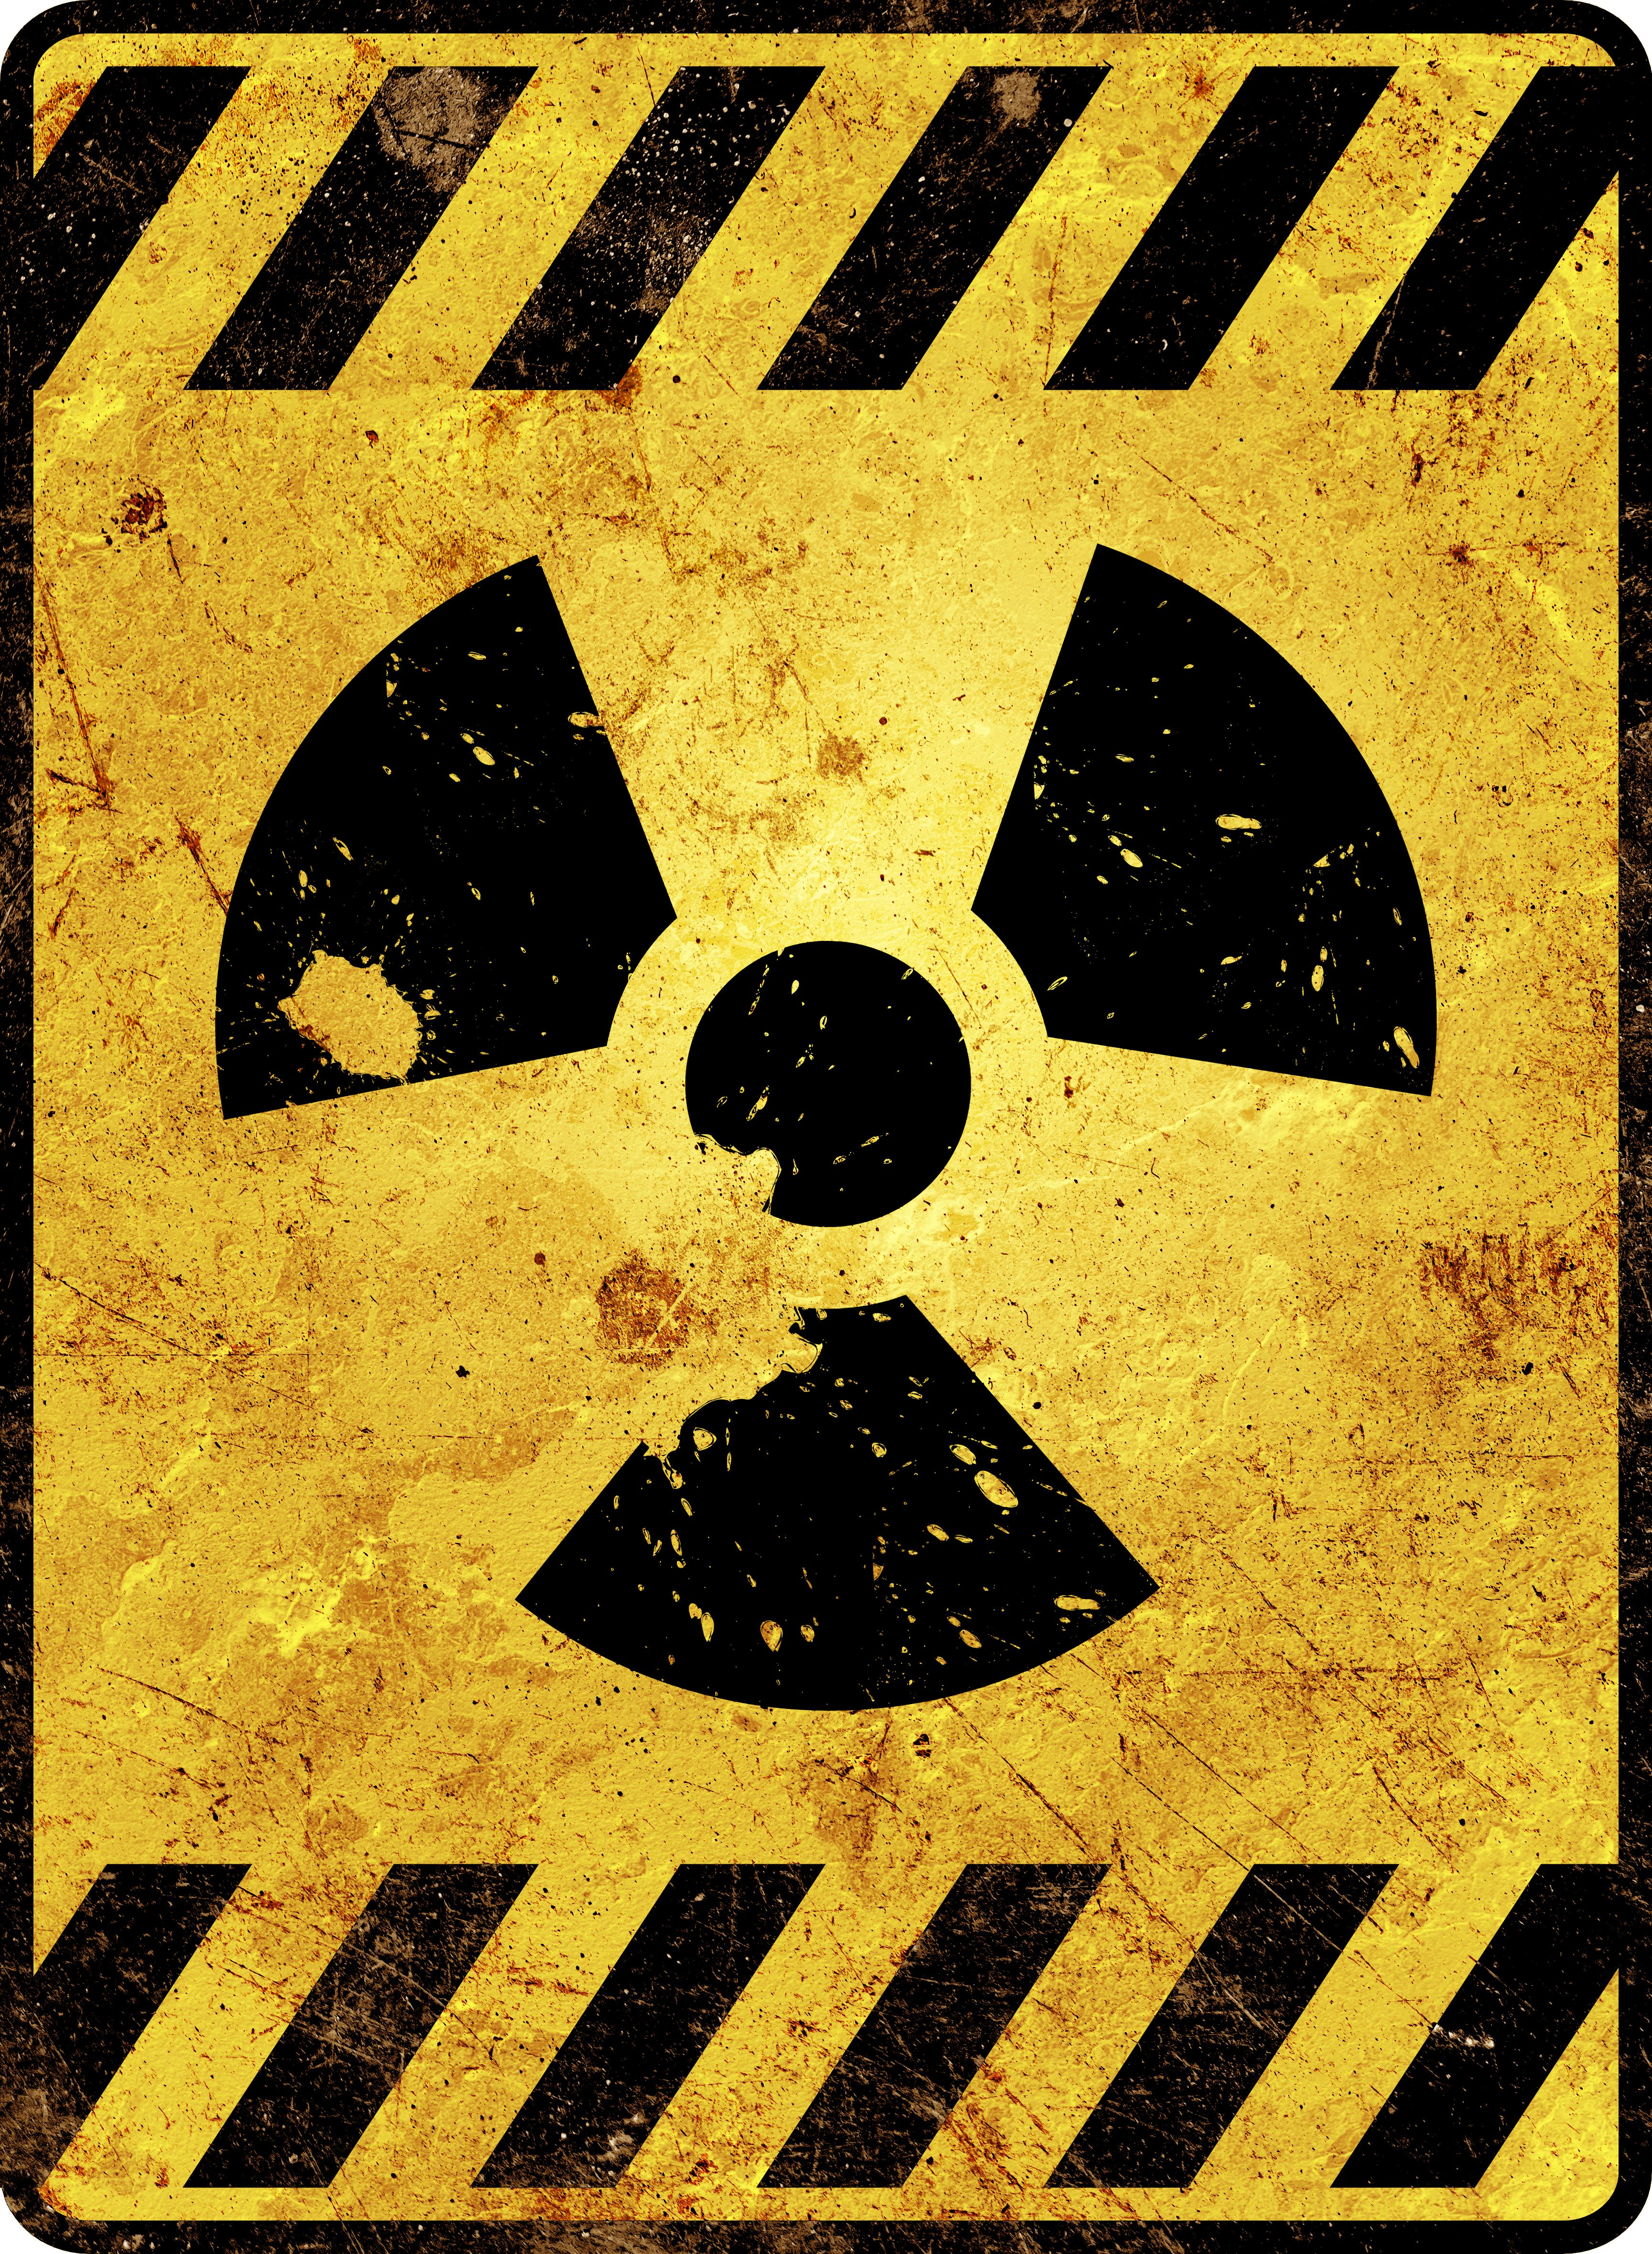 Radioactive Soil Found at Seattle Park - Environmental Watch